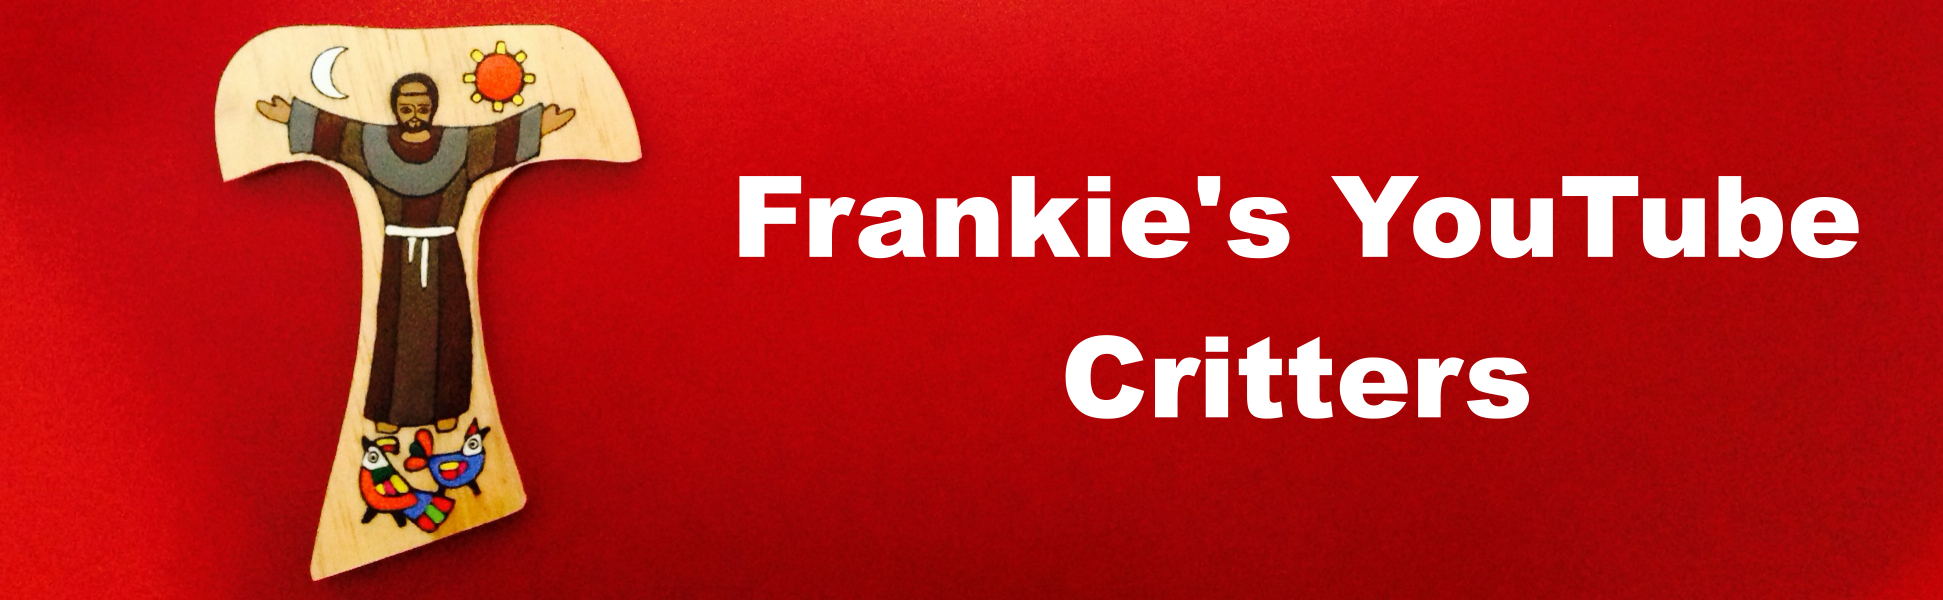 Frankie's YouTube Critters- 3